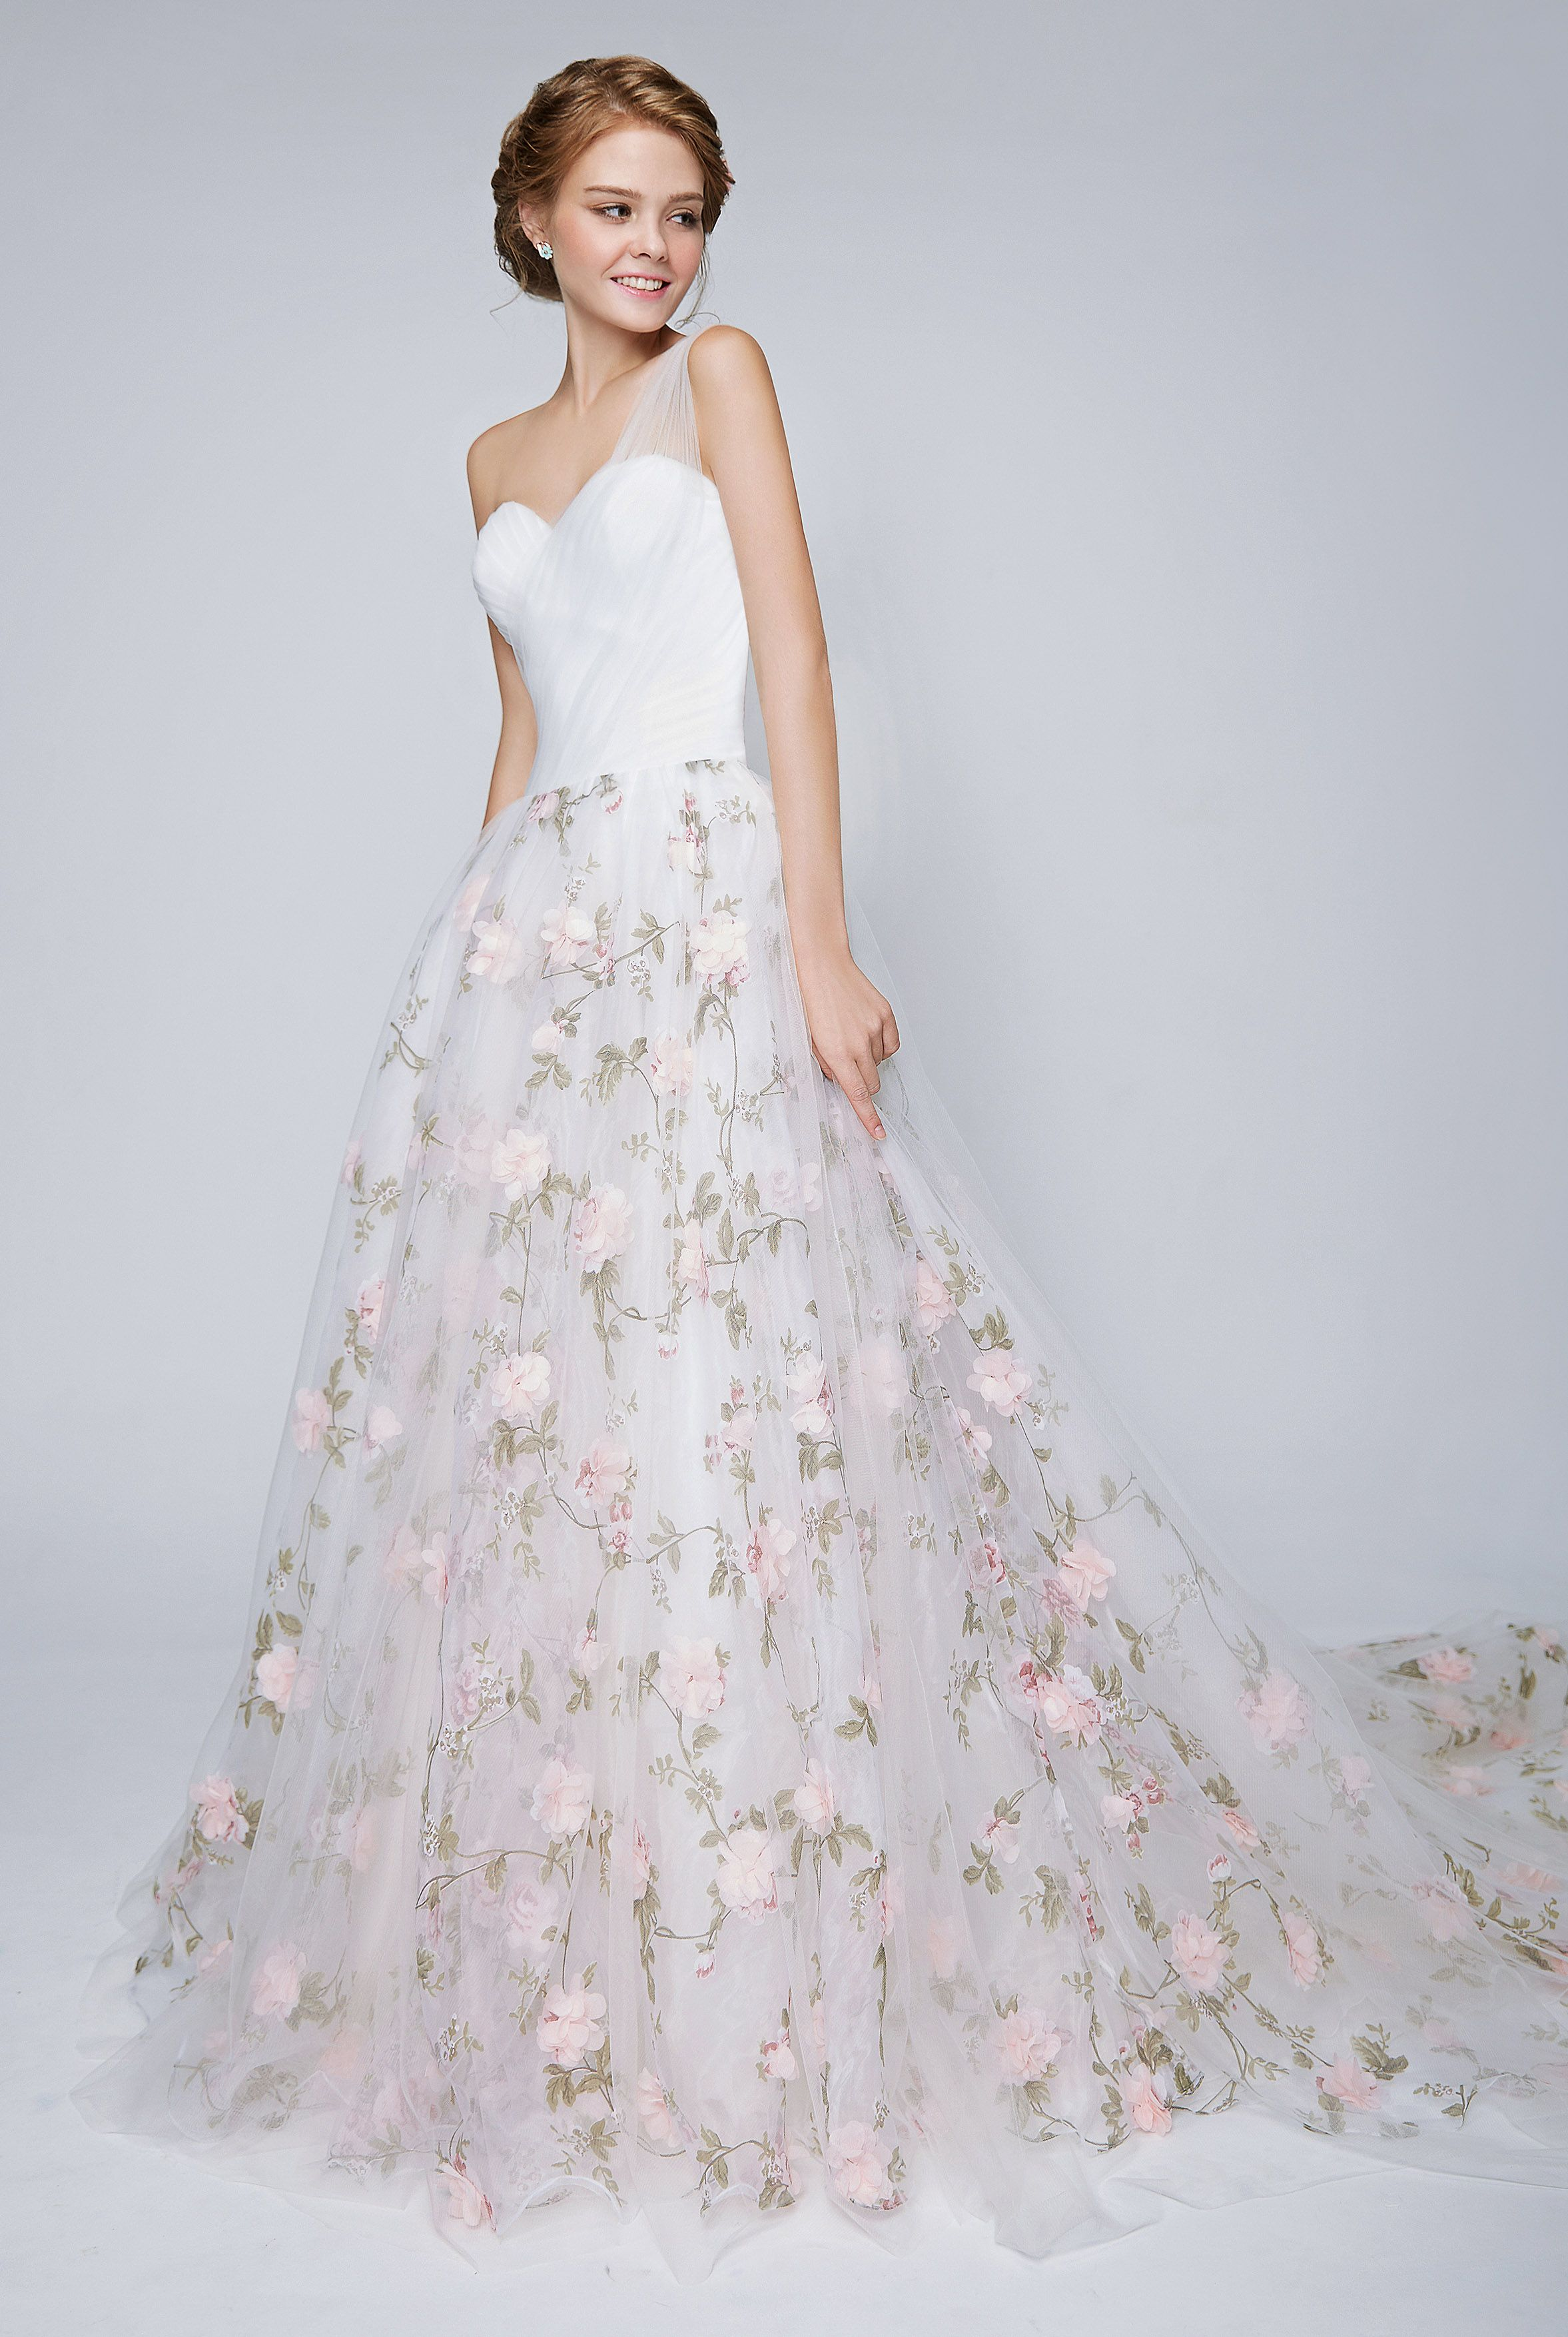 Blooming romantic pretty in floral floral wedding dresses bridal pretty in floral floral wedding dresses bridal boutique singapore wedding gown junglespirit Images